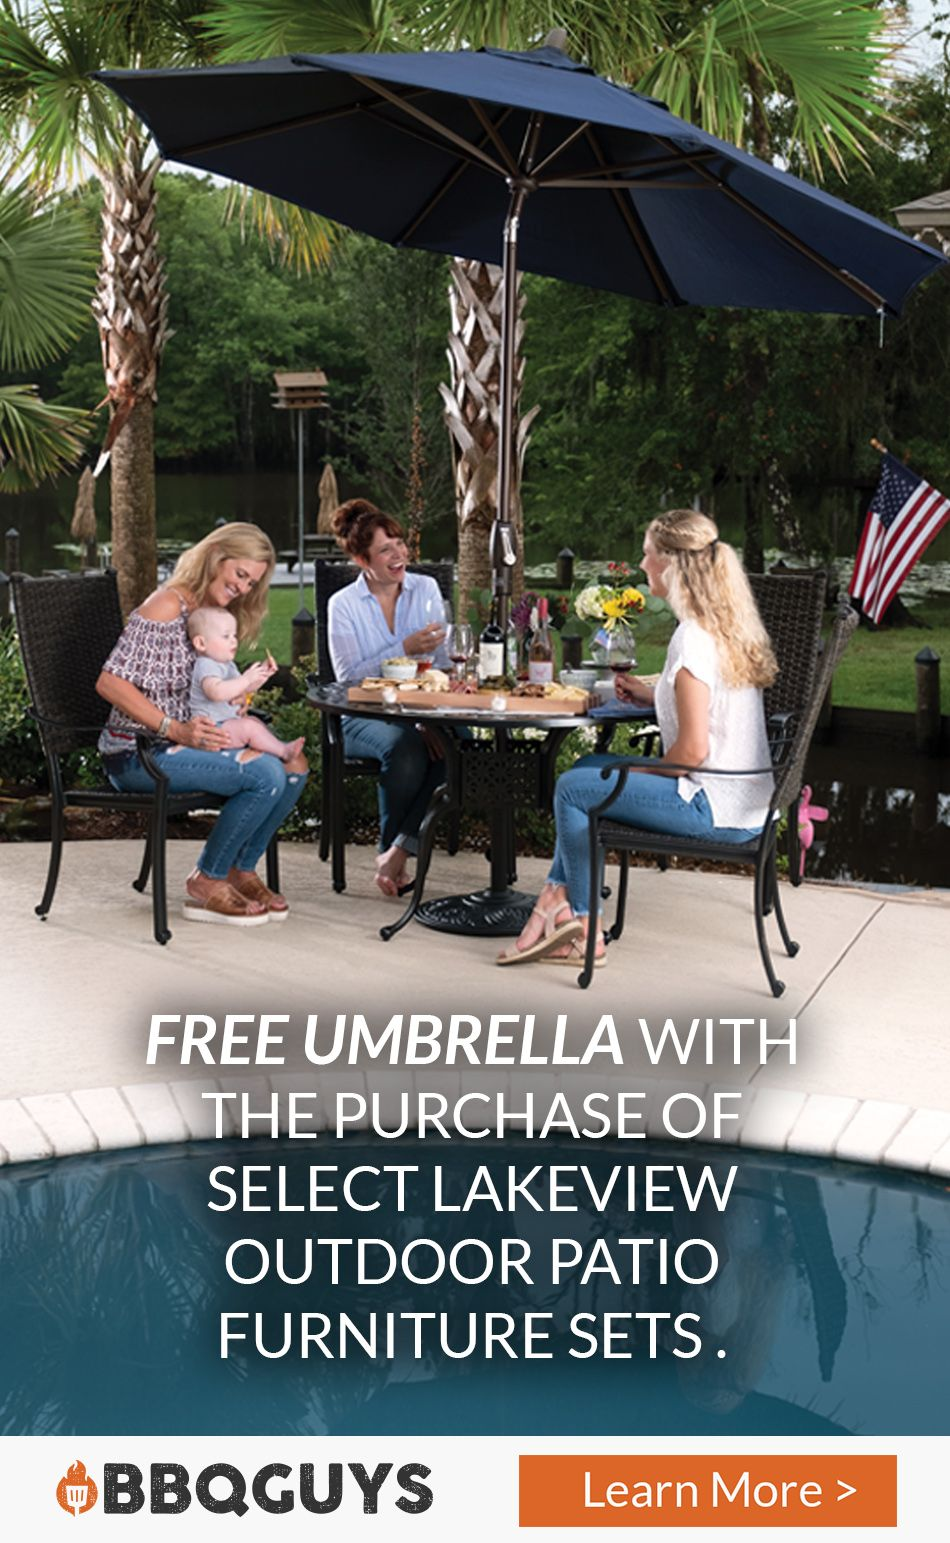 Receive A Free Umbrella And Base With The Purchase Of Select